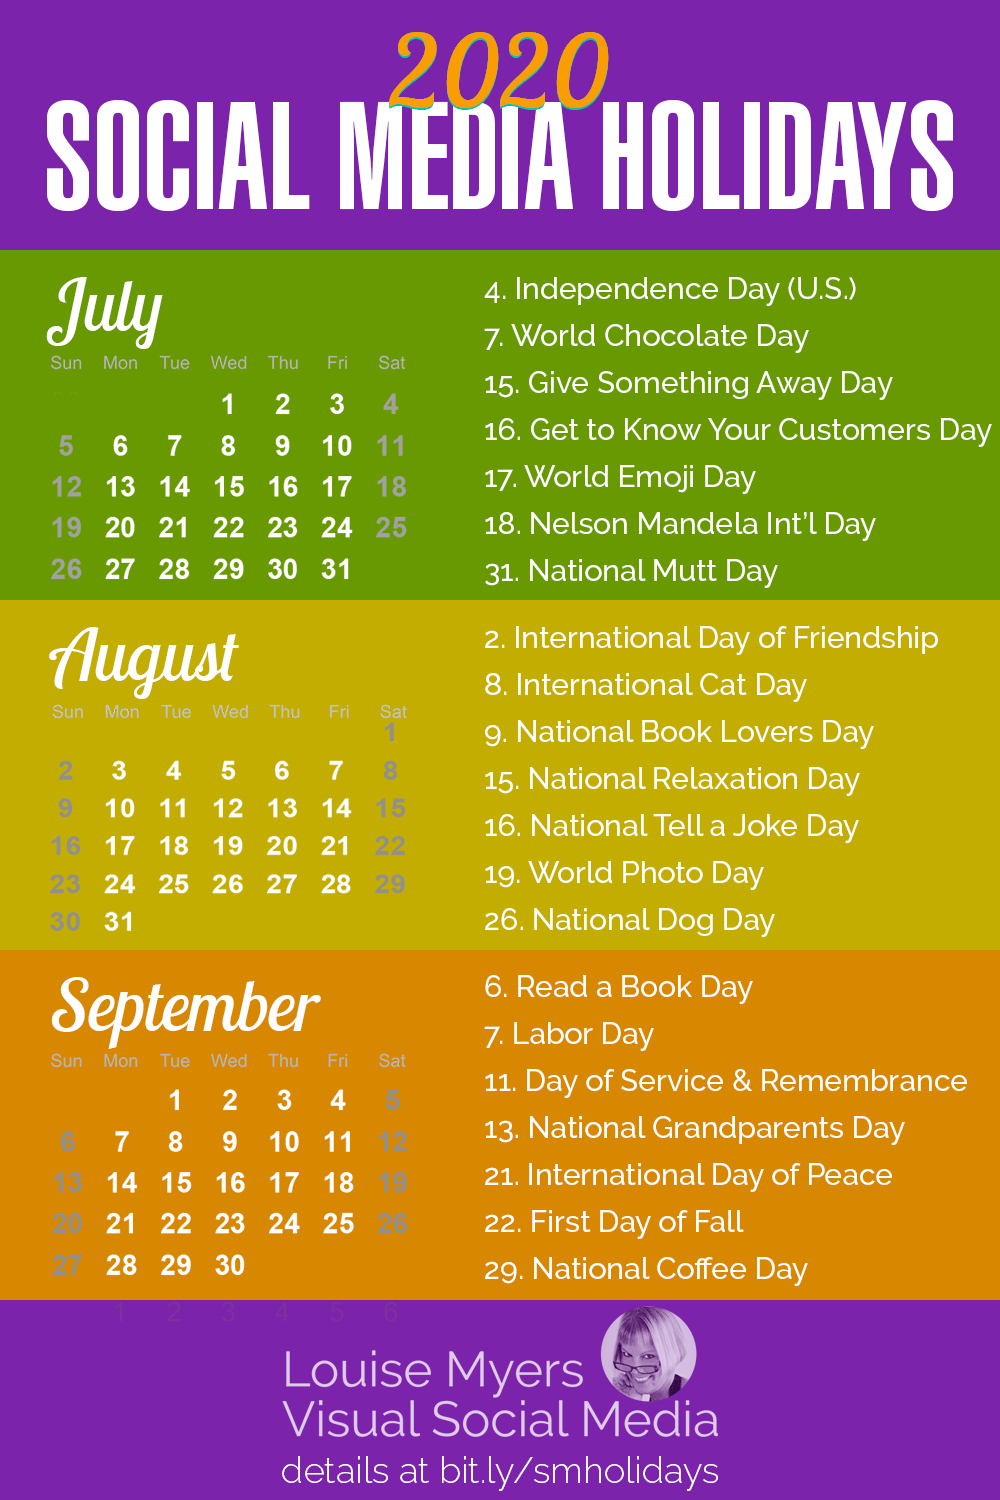 84 Social Media Holidays You Need In 2020: Indispensable!